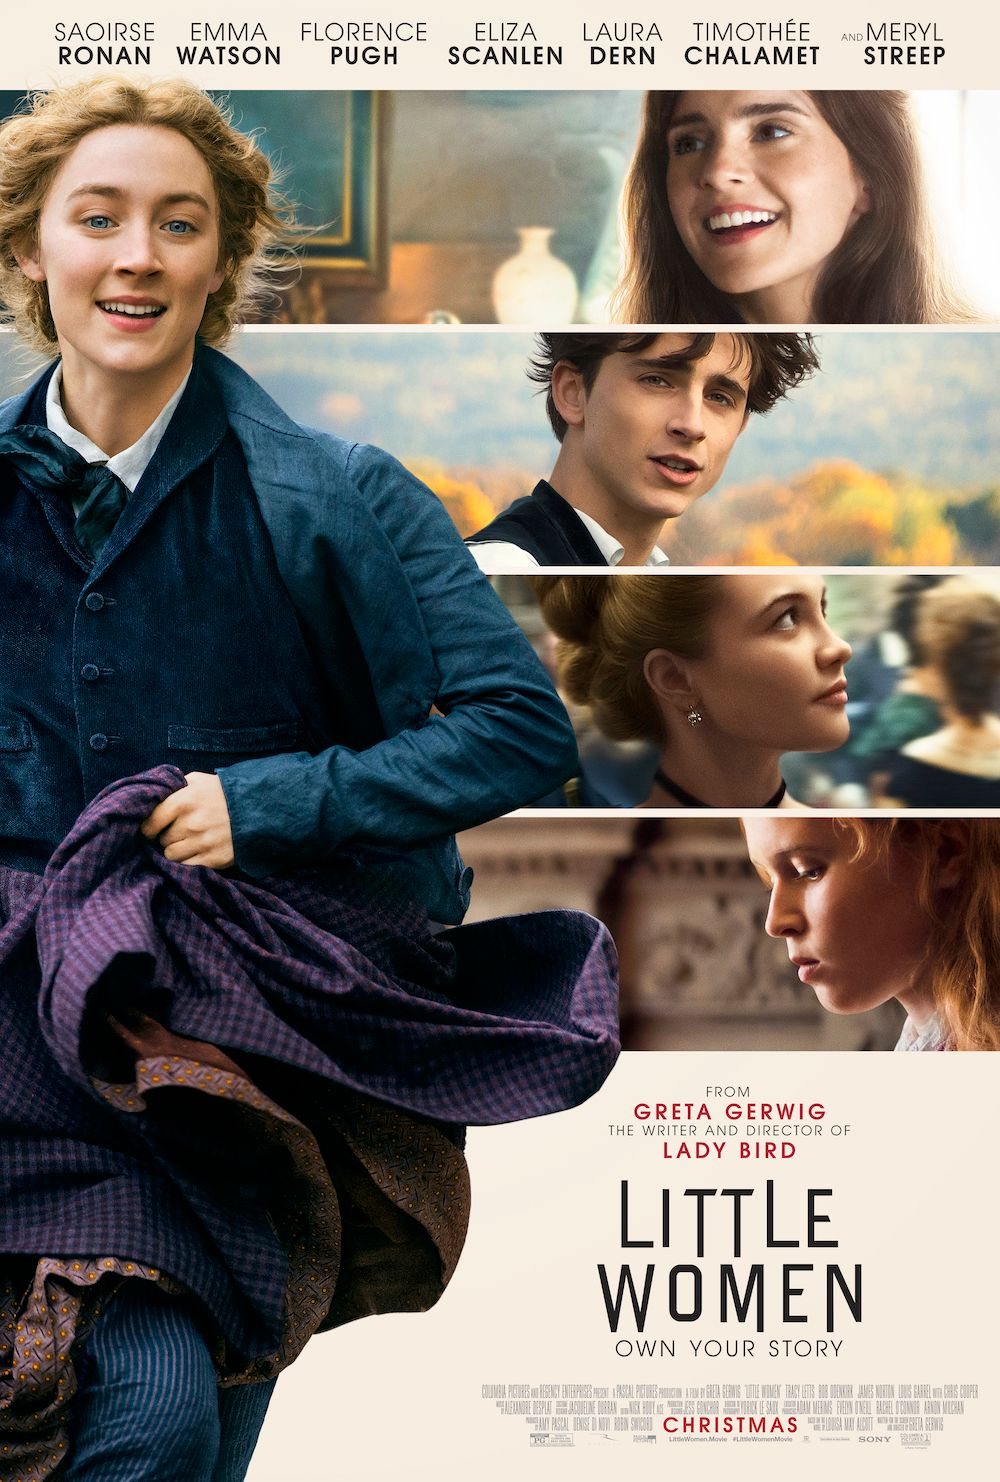 Image result for little women movie poster